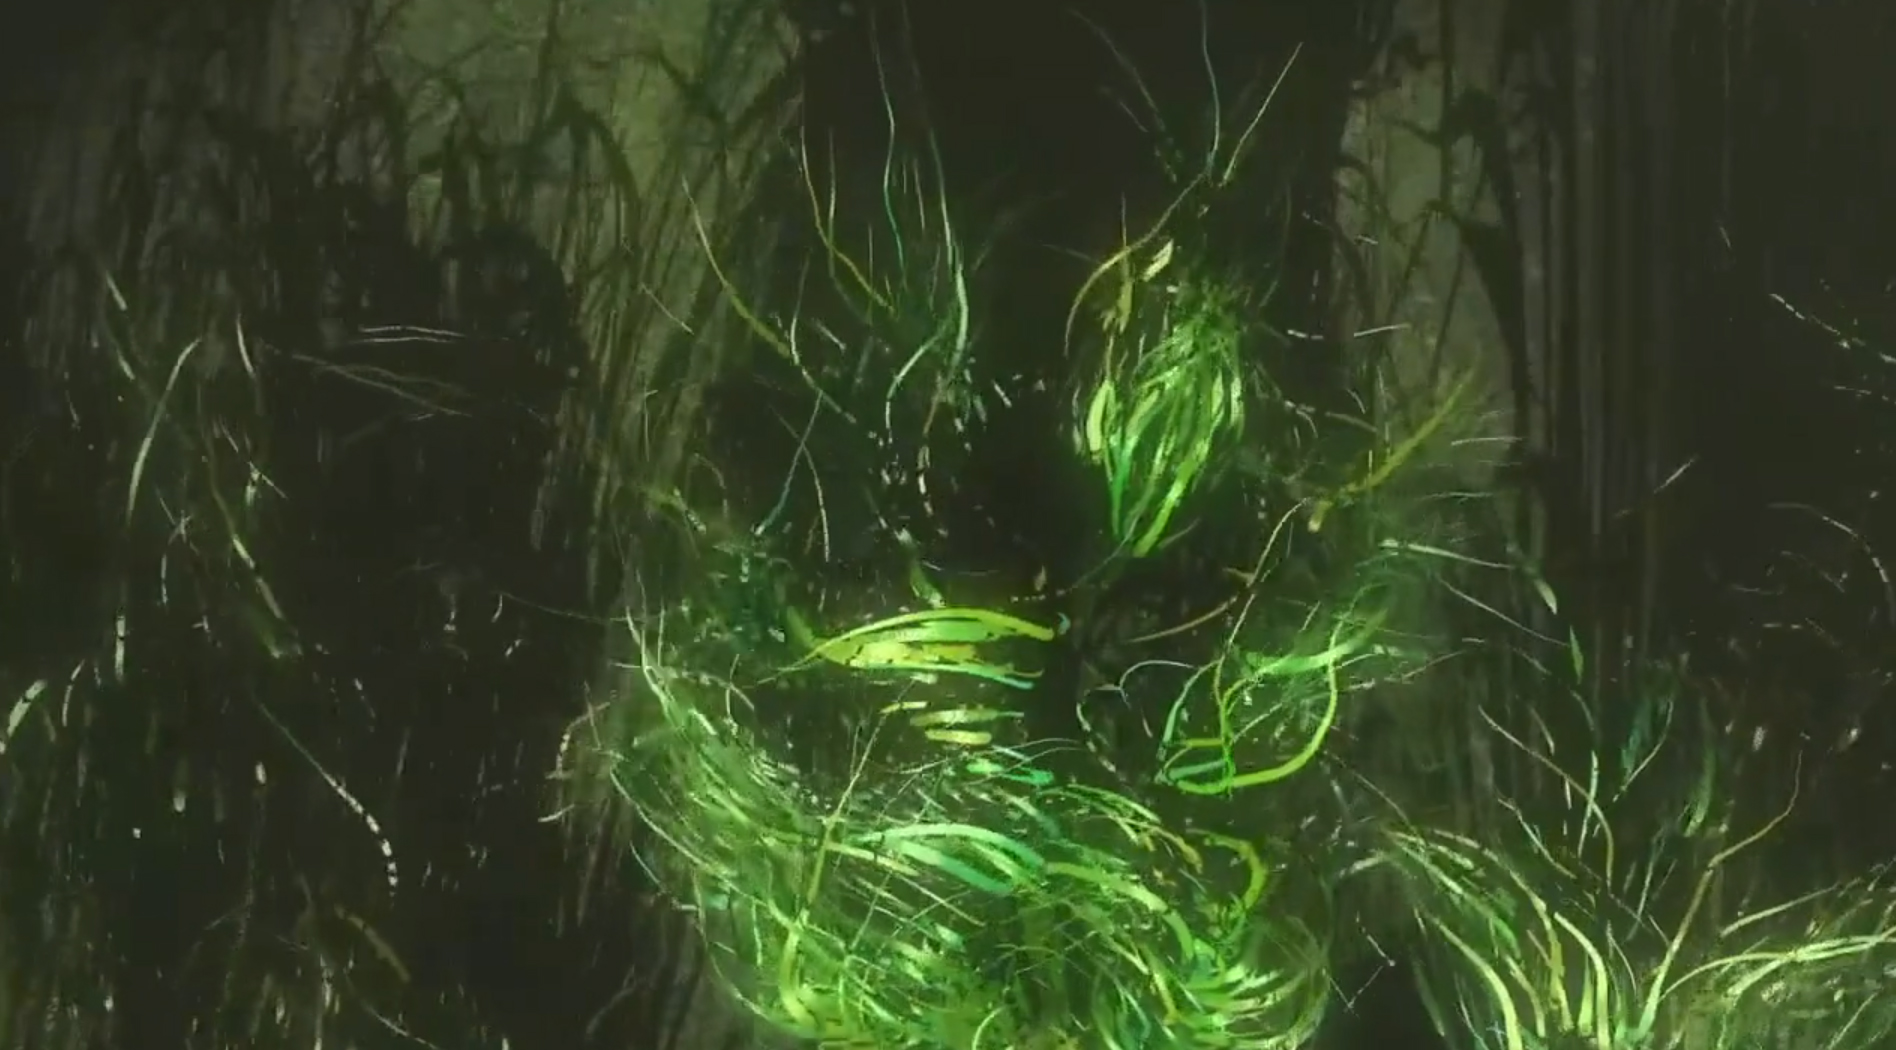 Video still from Jenn E Norton's THE WEEPING BROOK